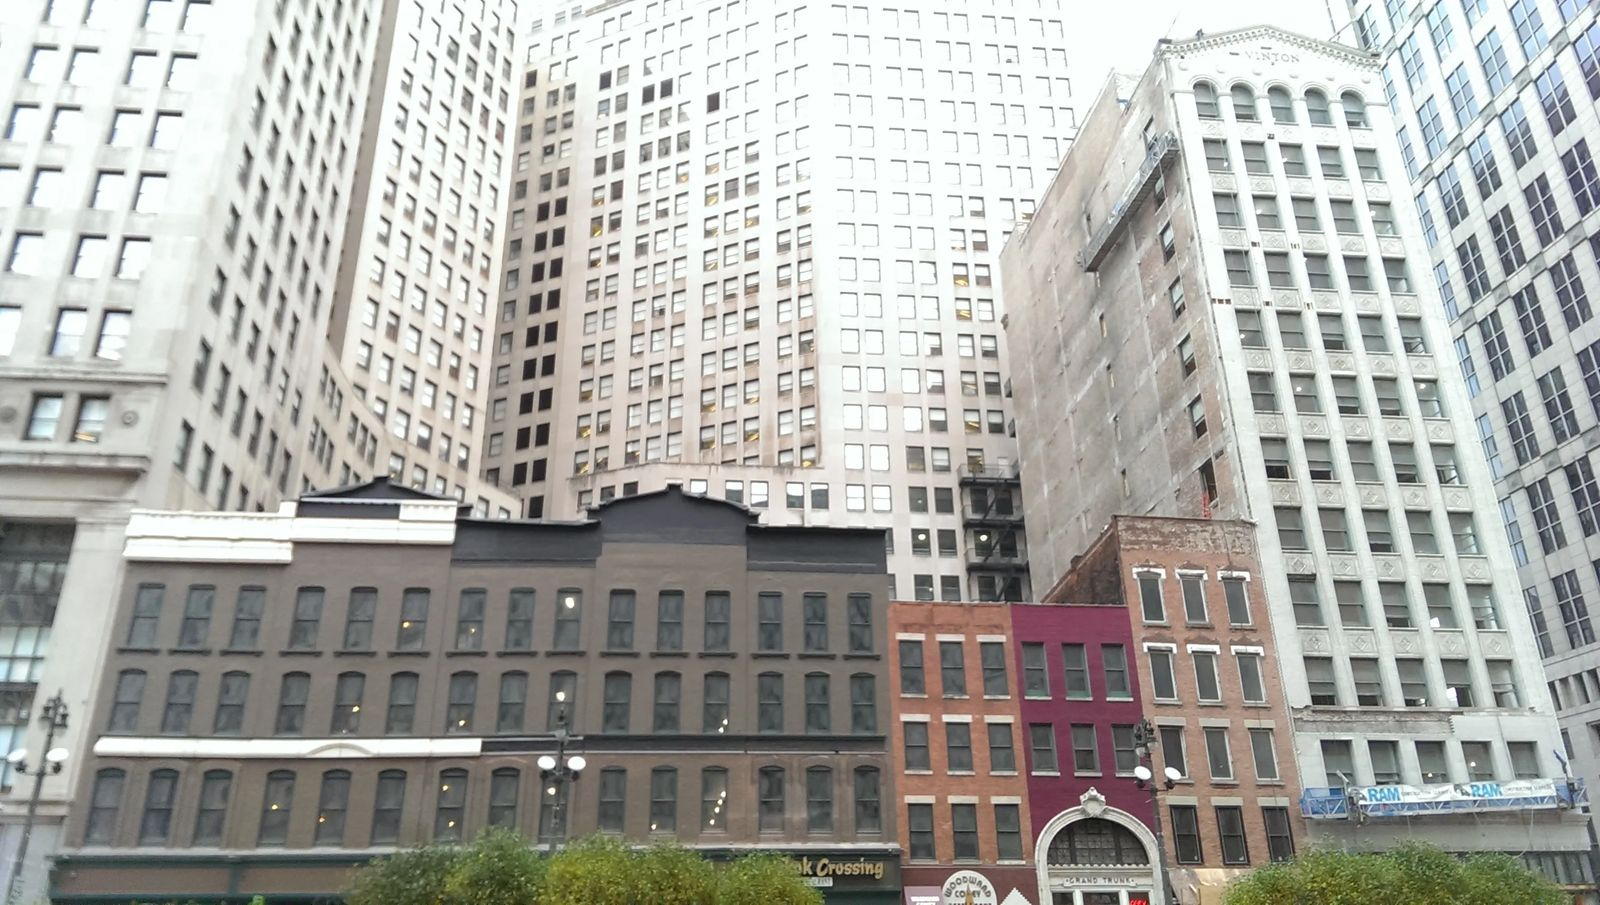 Photo of small buildings dwarfed by nearby skyscrapers in Detroit, Michigan